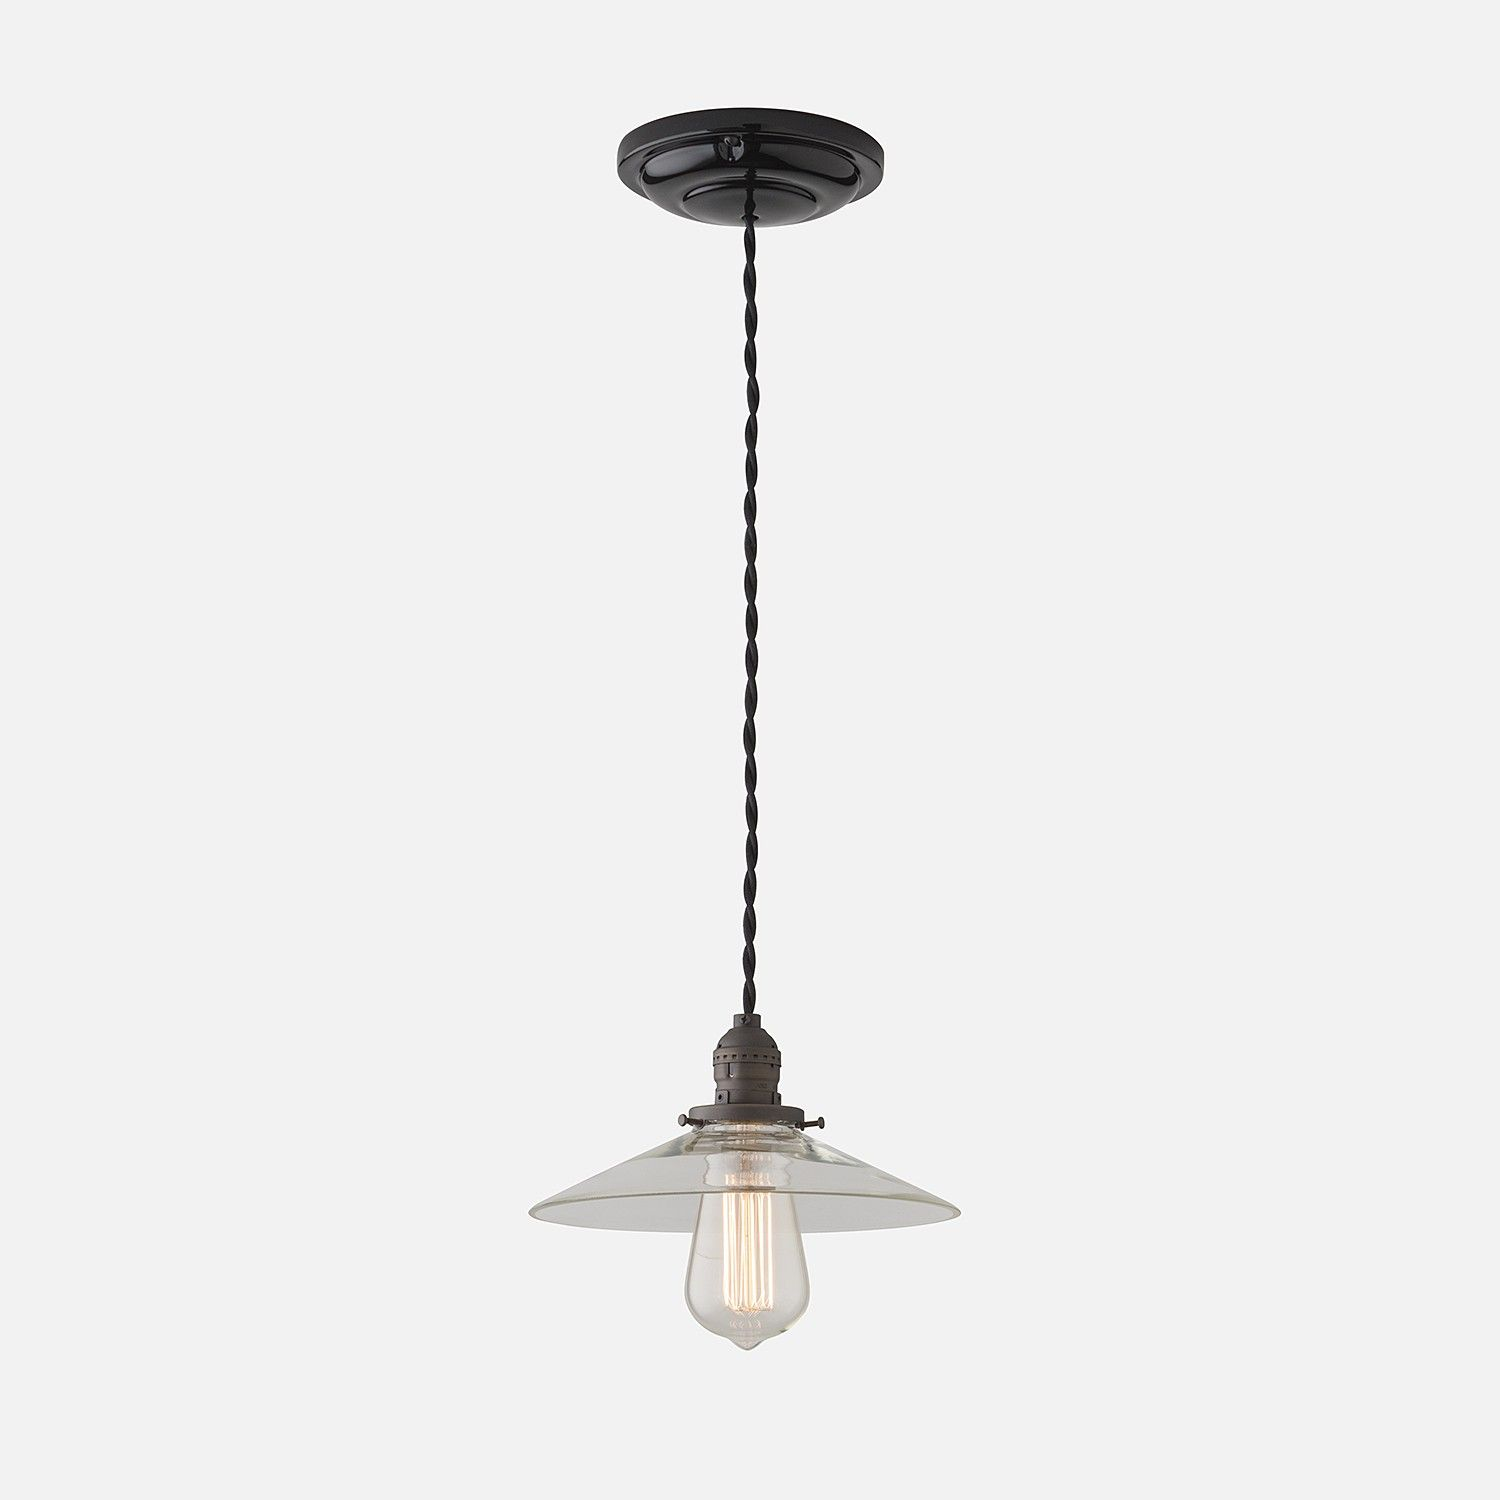 Lowell pendant 225 schoolhouse electric pendant lighting and canopy lowell pendant light fixture schoolhouse electric supply co pendant over sink arubaitofo Gallery